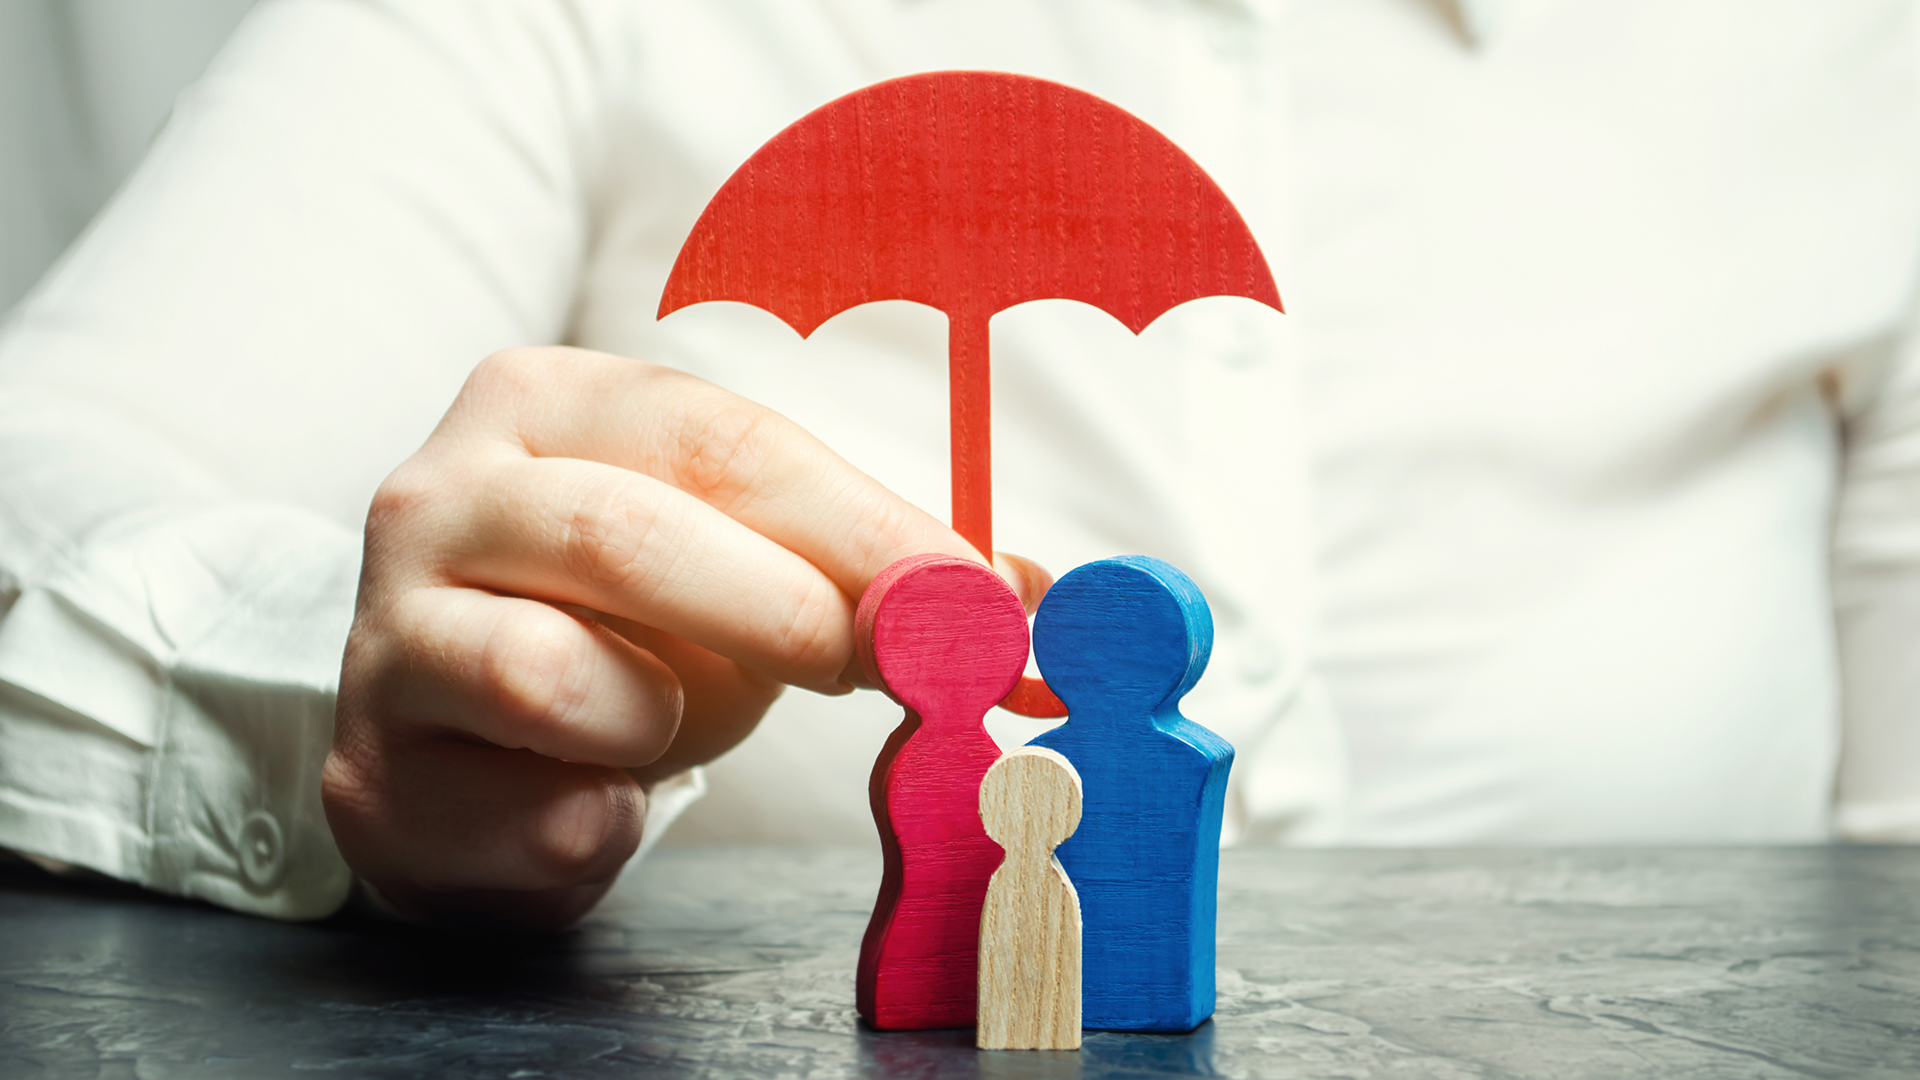 Wooden block family under umbrella